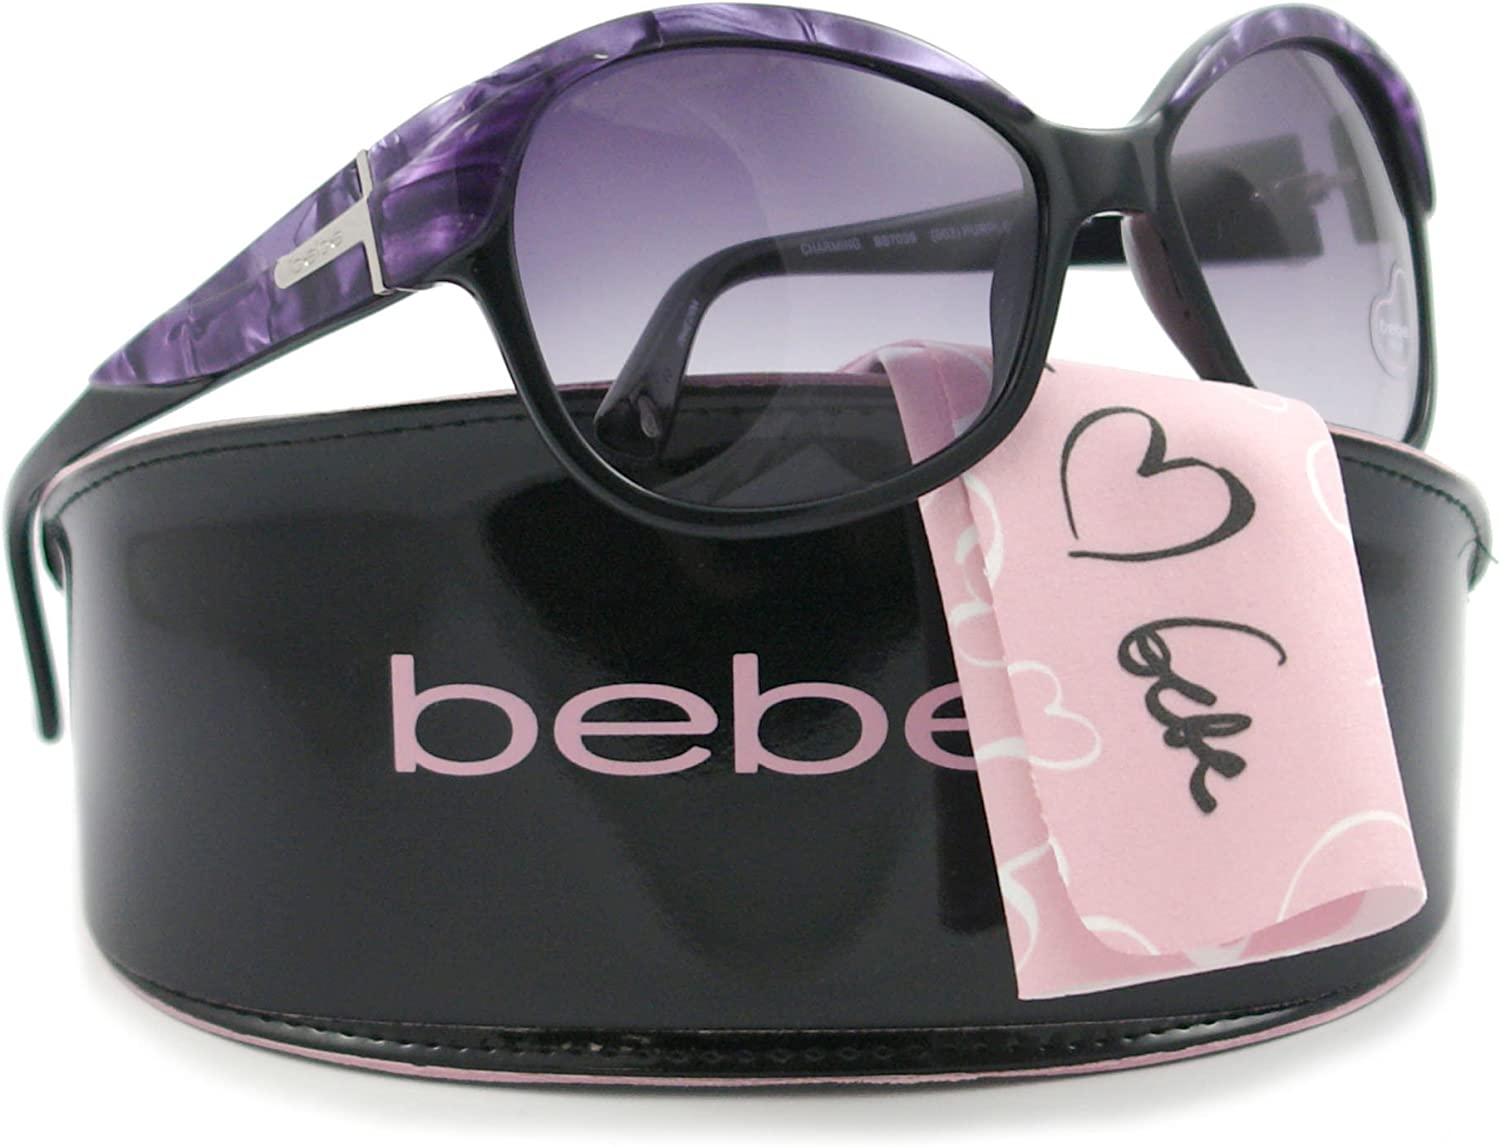 Bebe BB7039 CHARMING Sunglasses PURPLE MARBLE, 58 mm